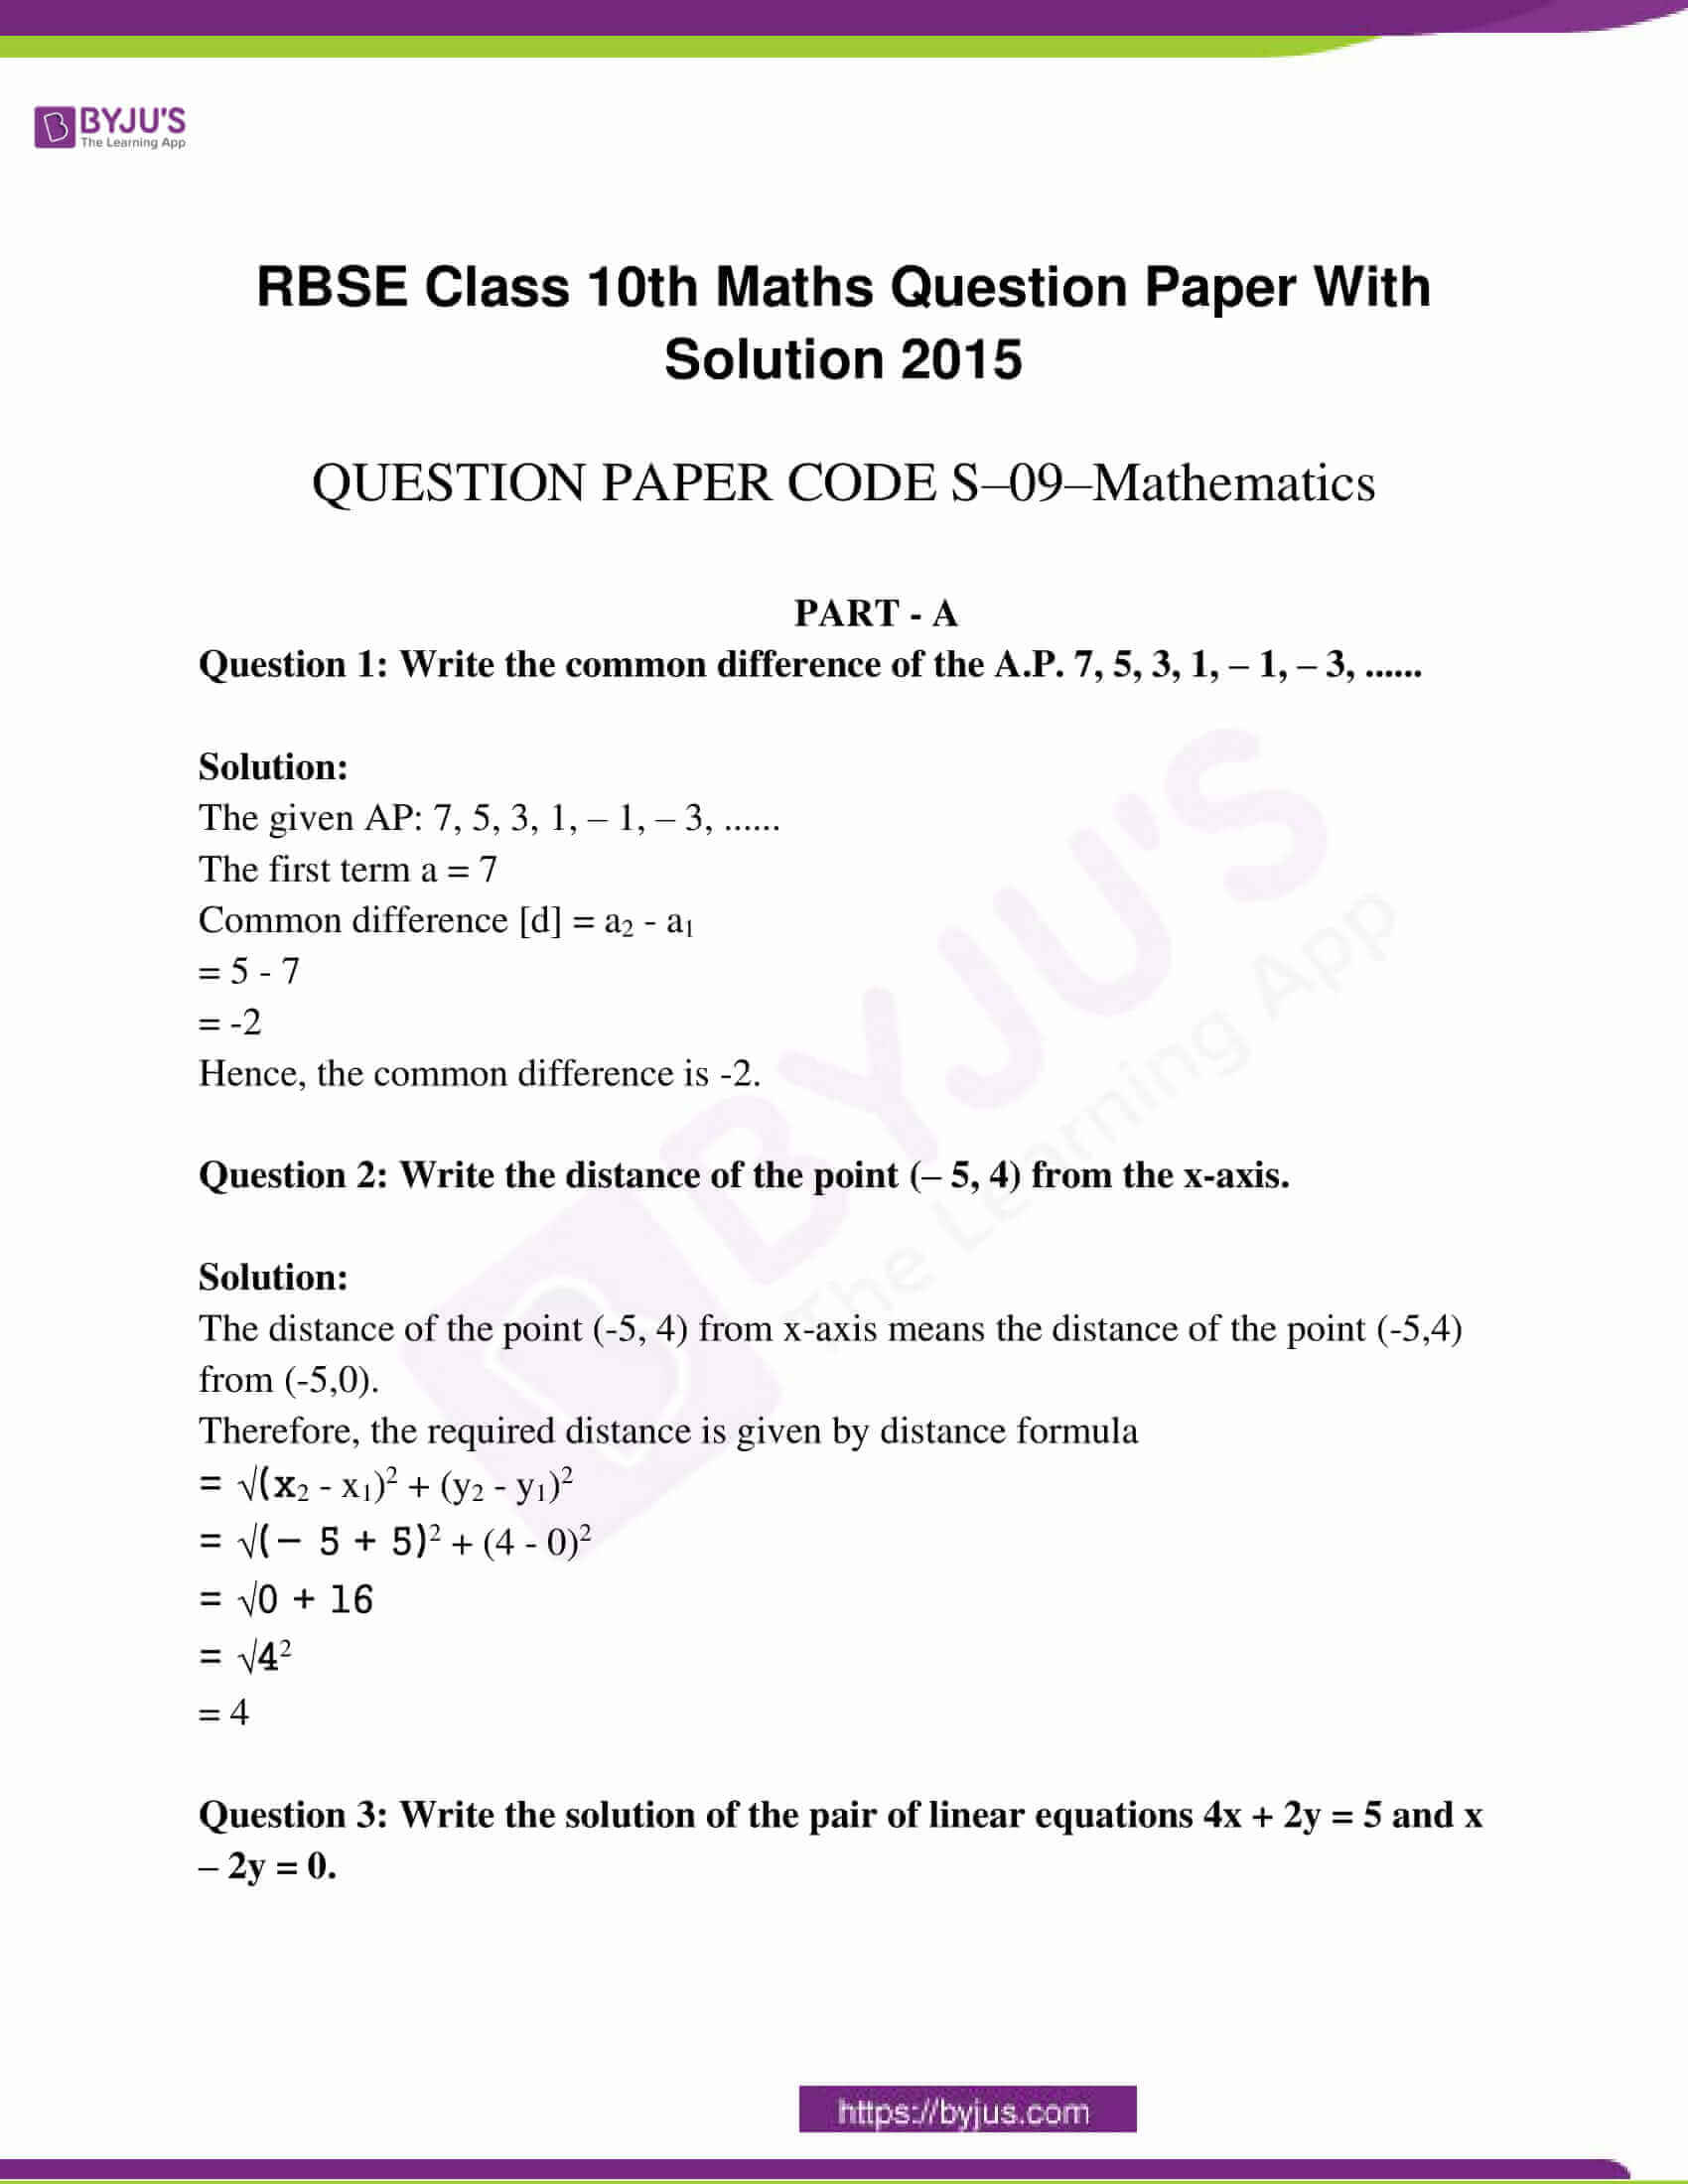 rajasthan board class 10 examination question paper sol march 2015 01